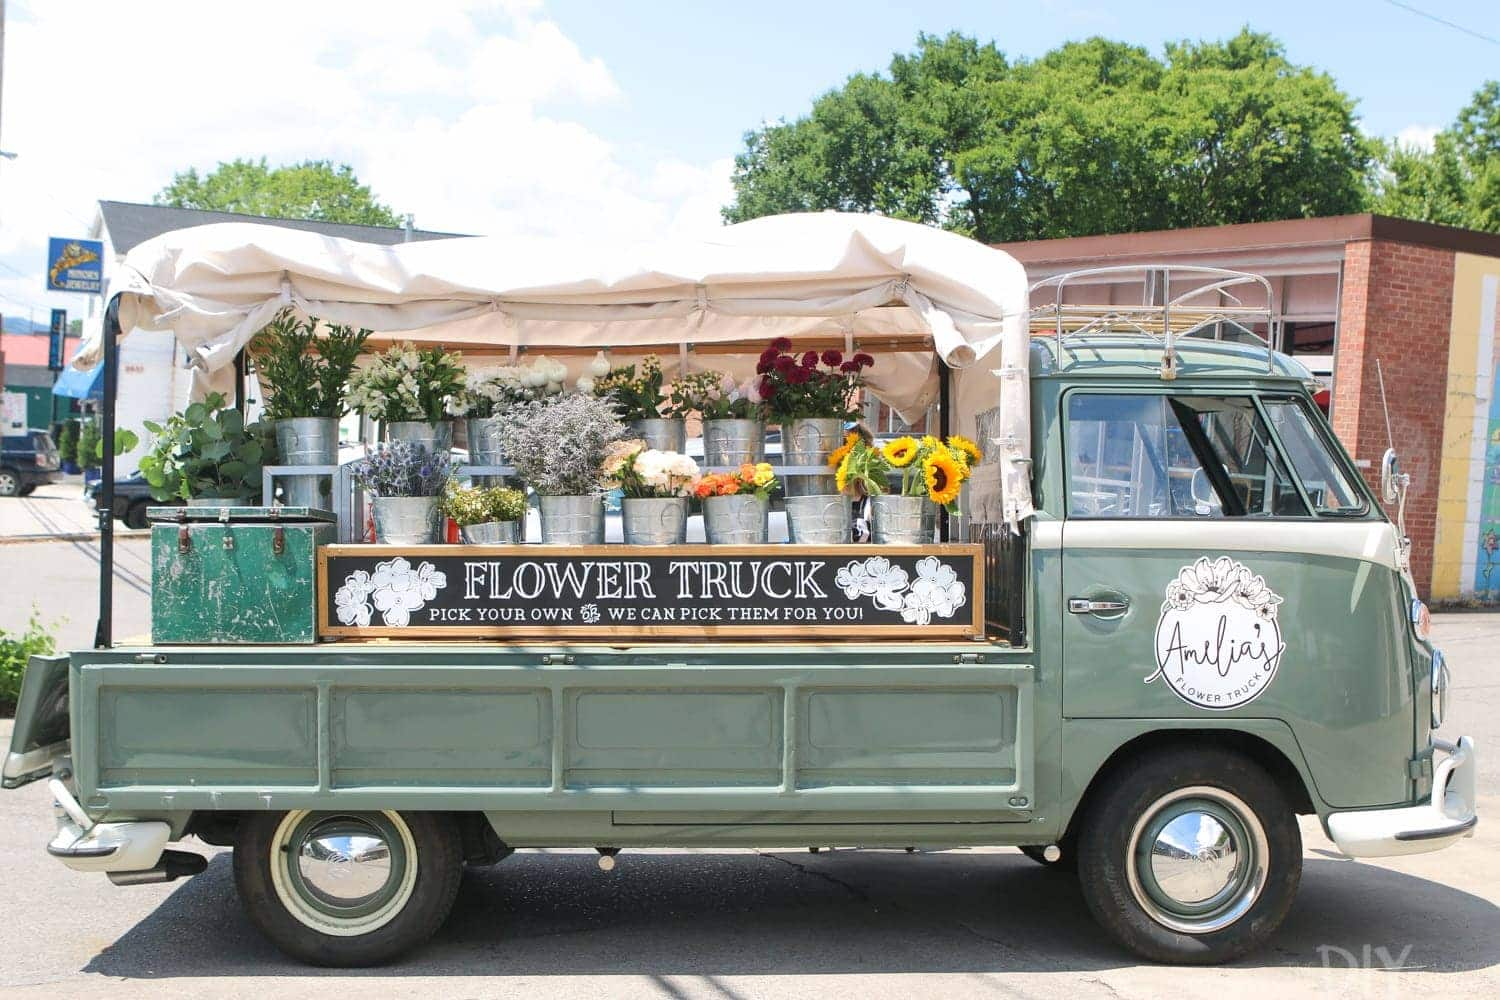 Travel_Nashville-flower-truck